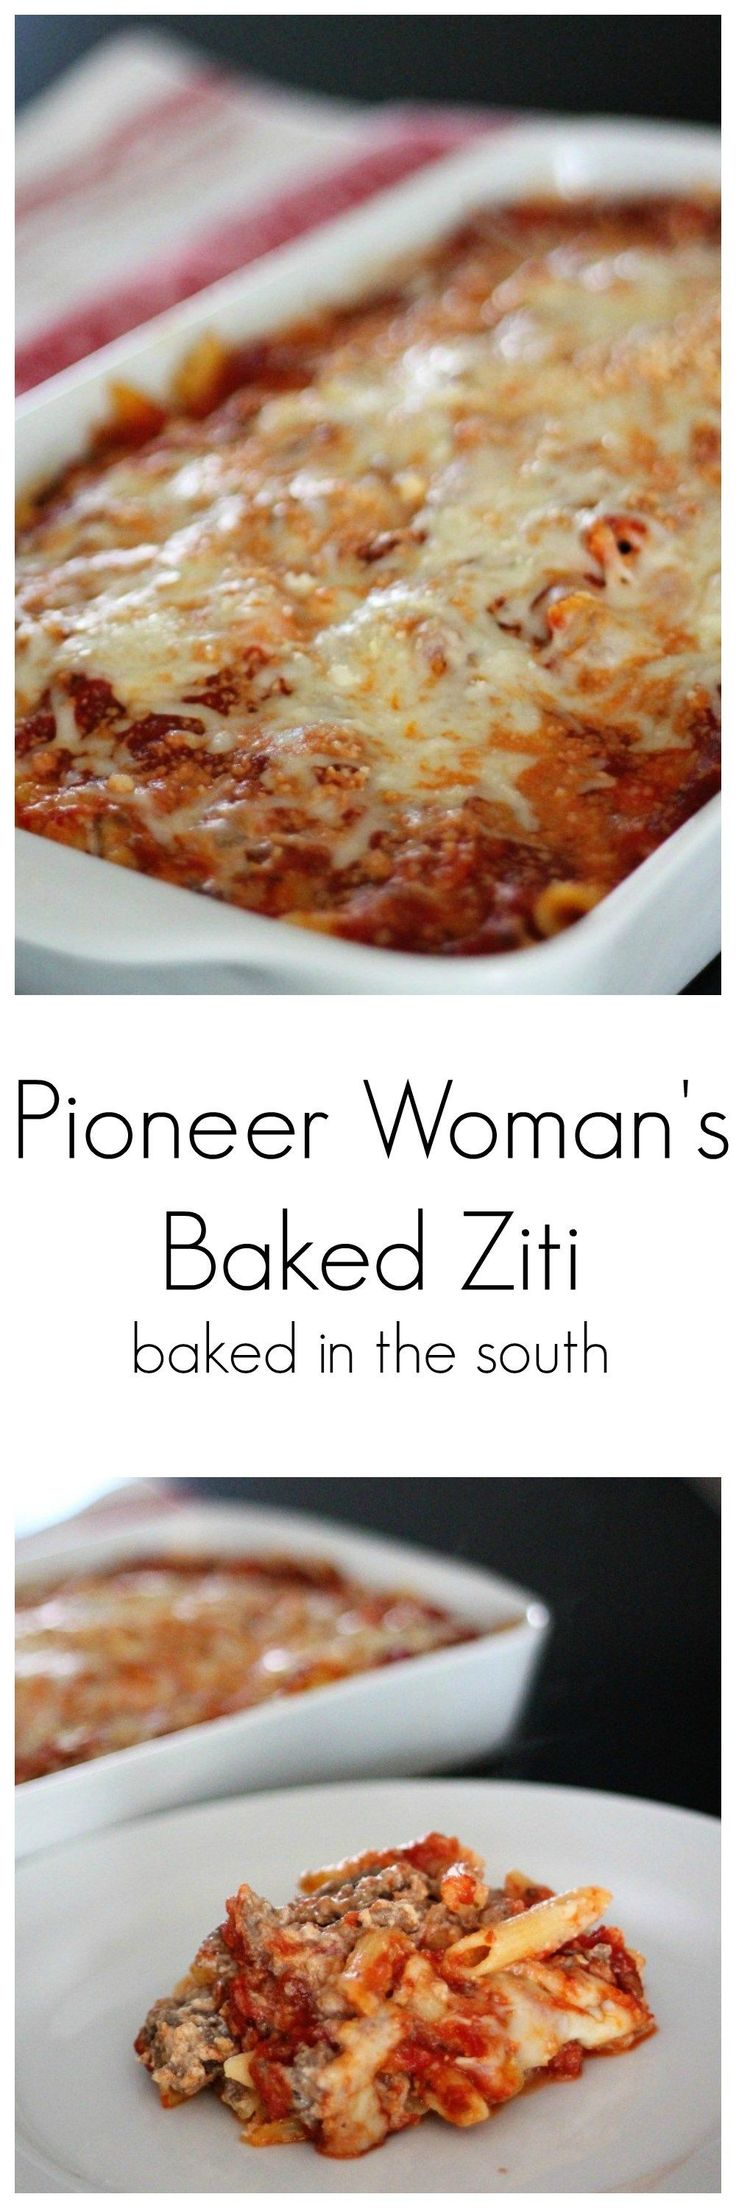 Pioneer Woman's Baked Ziti....made this tonight (02/12/18). Kind of put my own spin on it, but somewhat followed recipe. I did add spinach of course. Smells and looks delicious...can't wait to eat!!